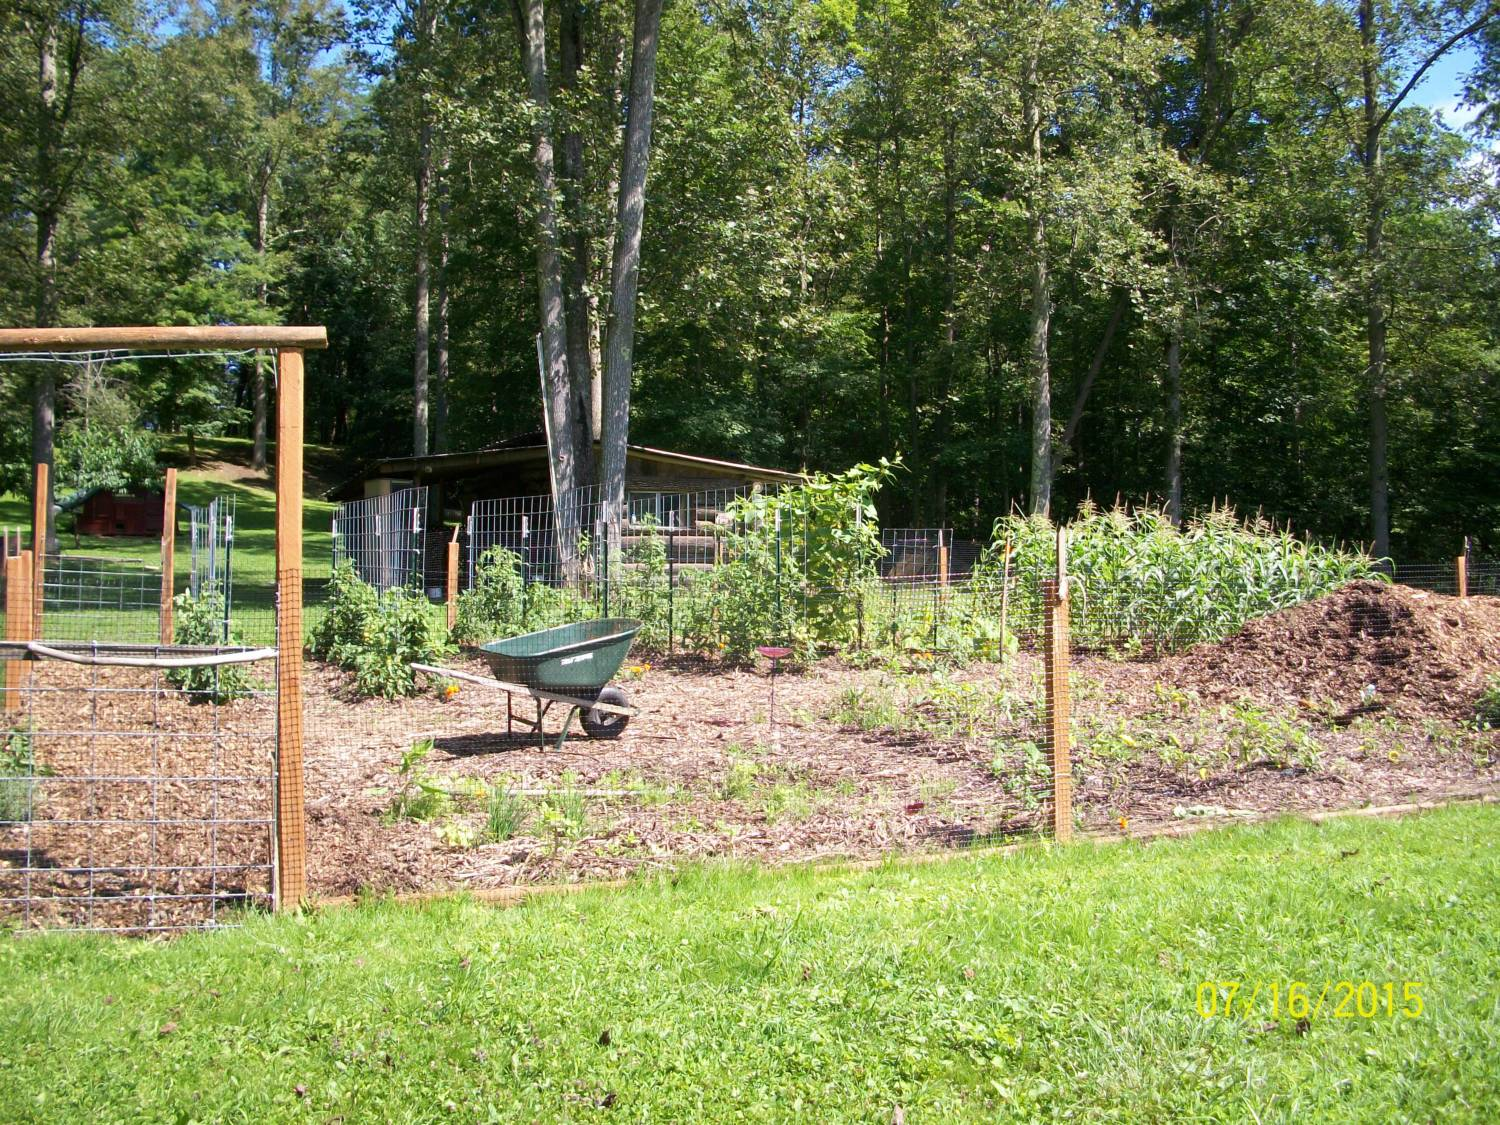 How Do You Keep Your Freerange Chickens Out Of Raised Bed Gardens